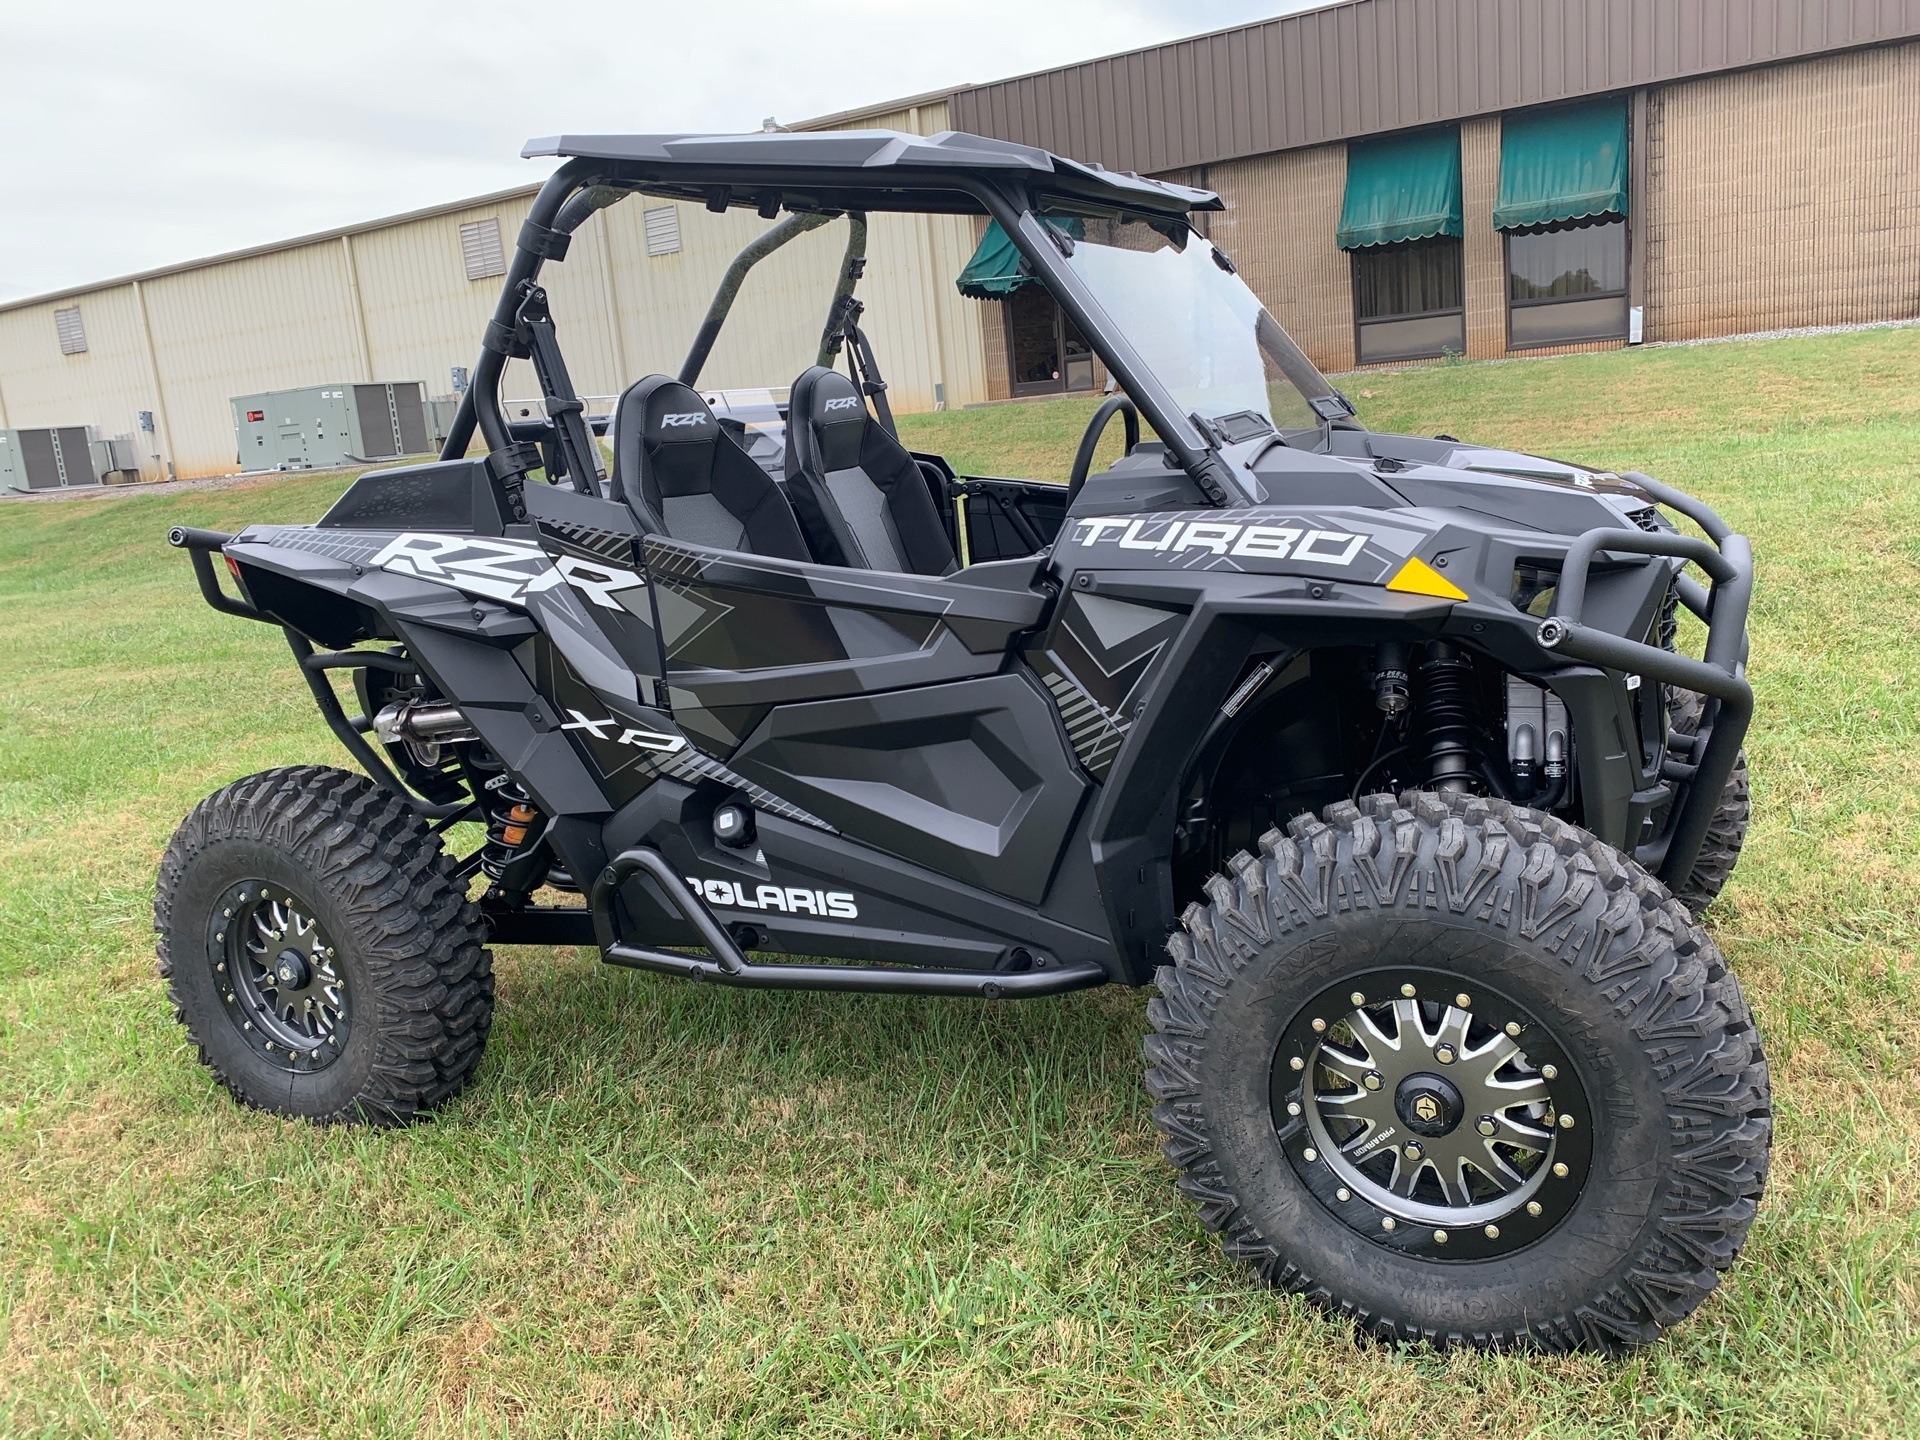 2020 Polaris RZR XP Turbo in Statesville, North Carolina - Photo 3